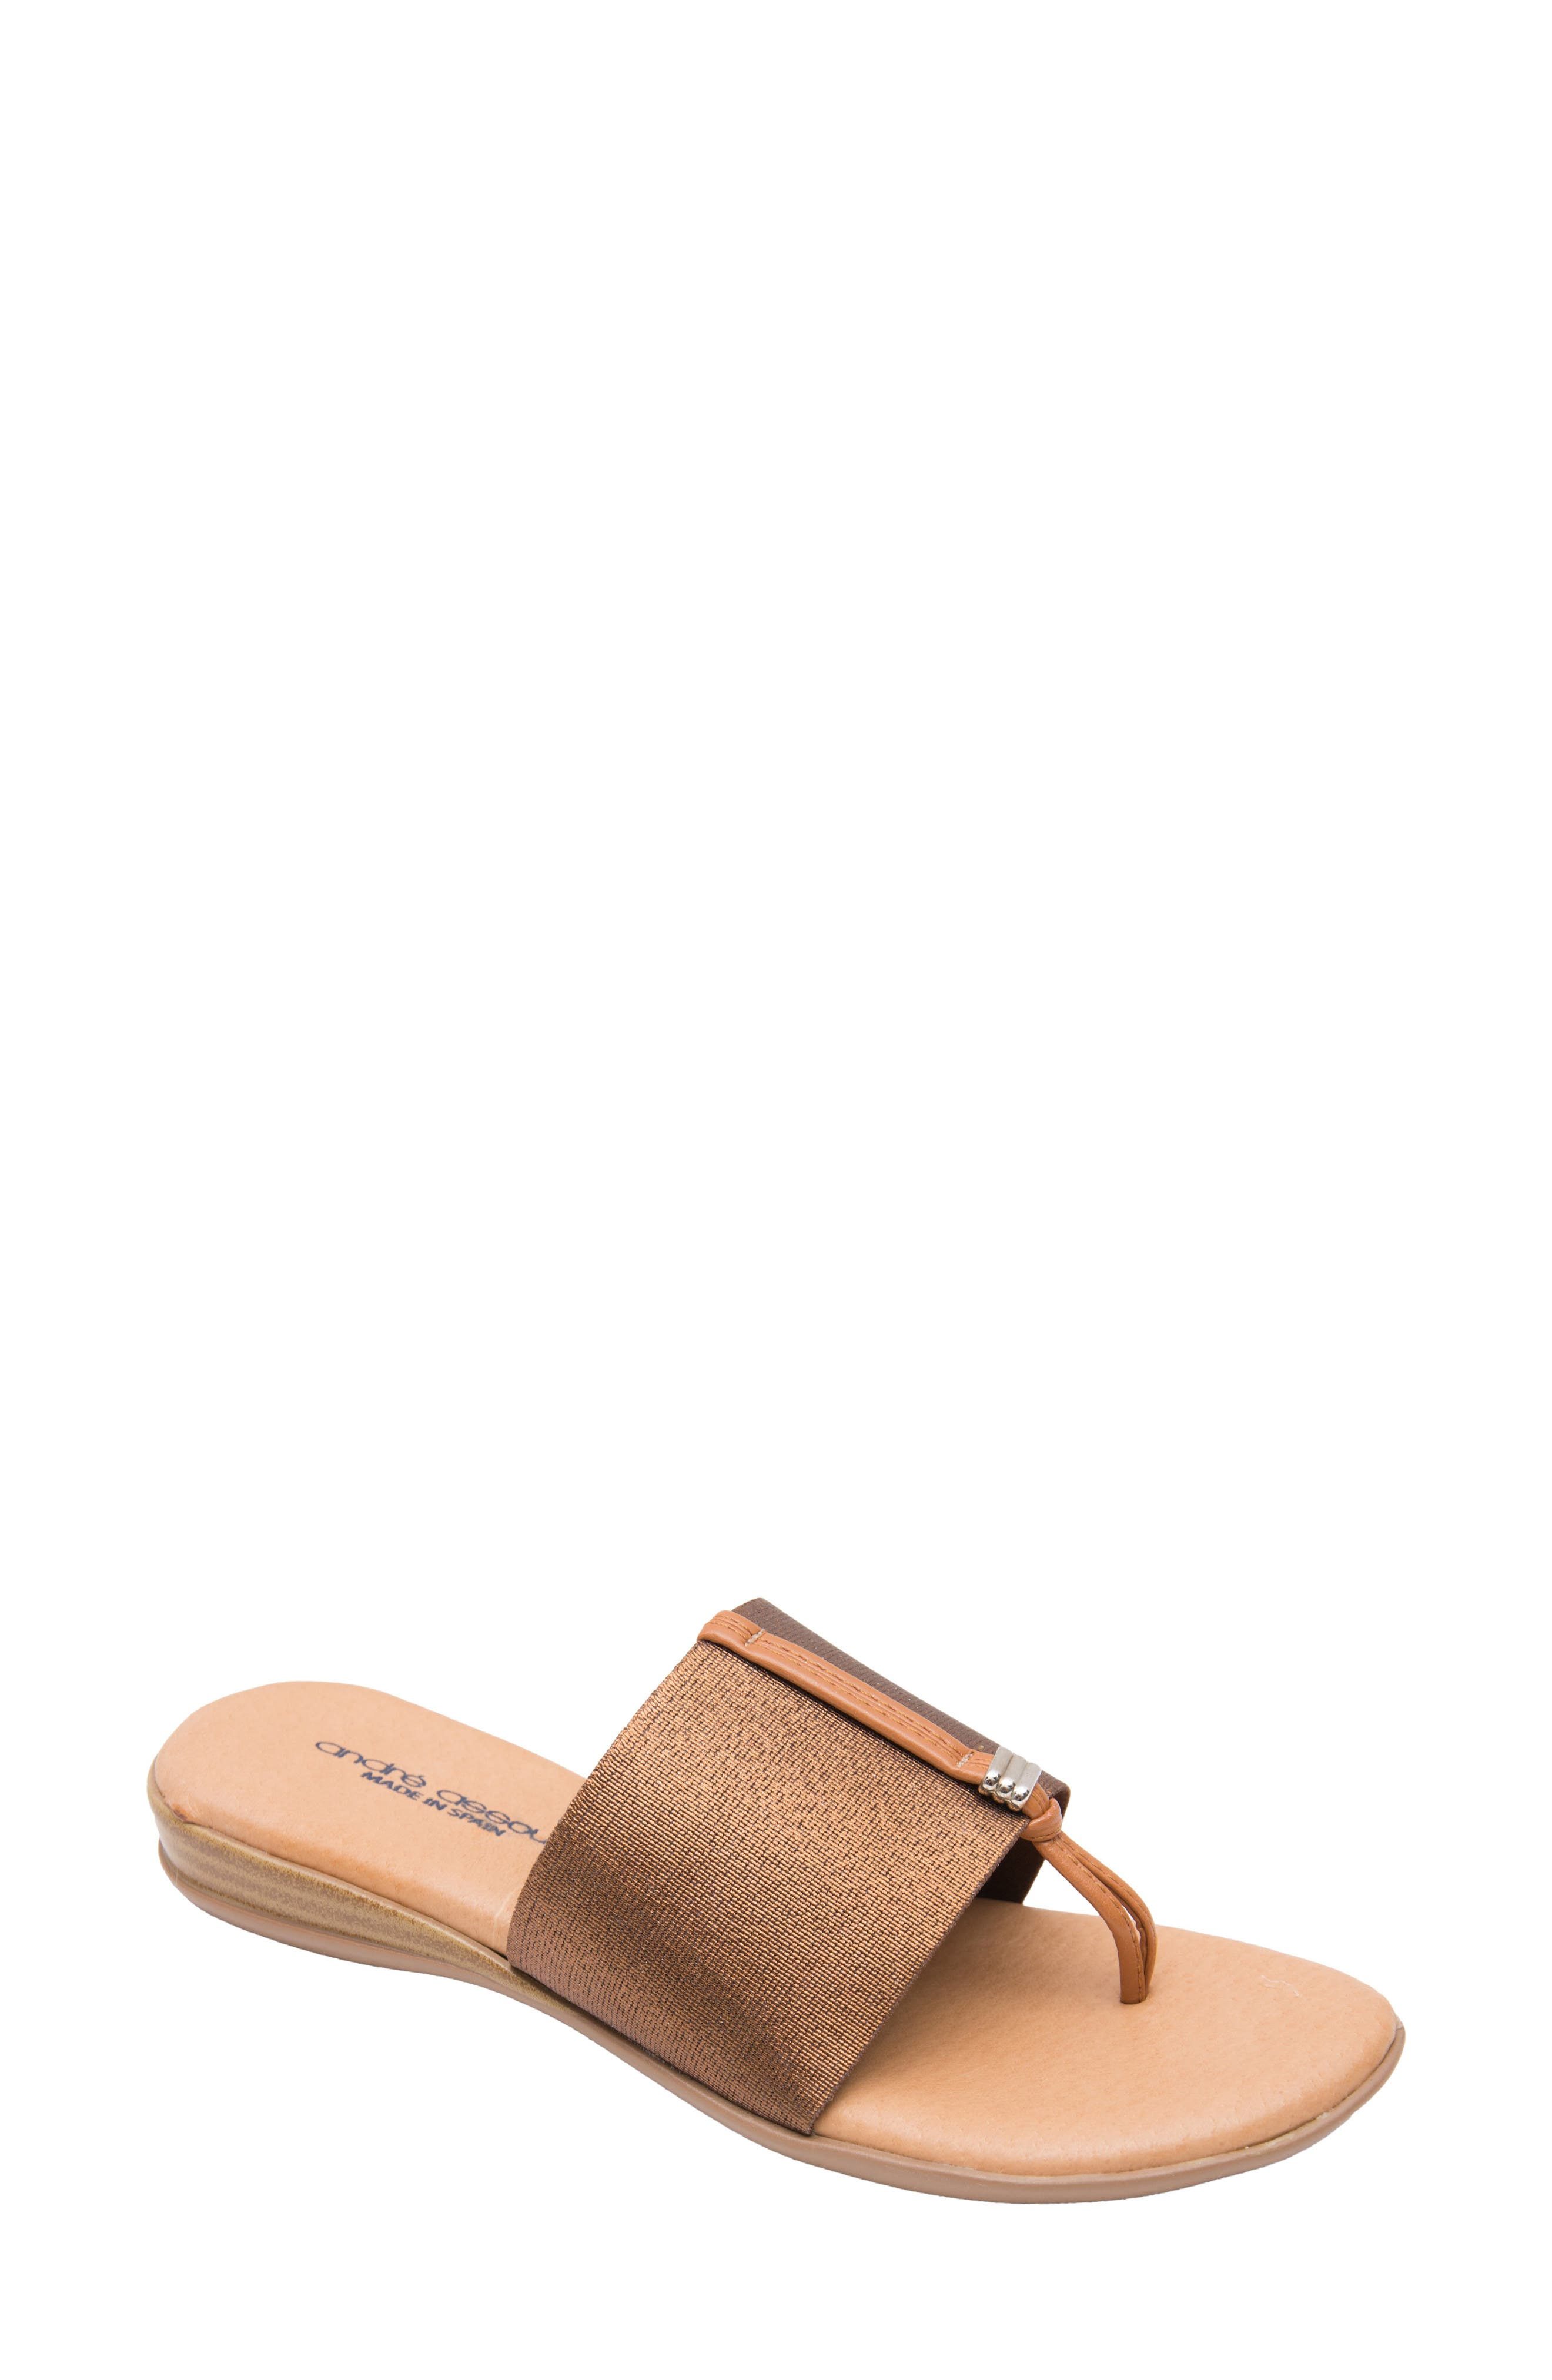 ANDRE ASSOUS Nice Sandal in Neutrals